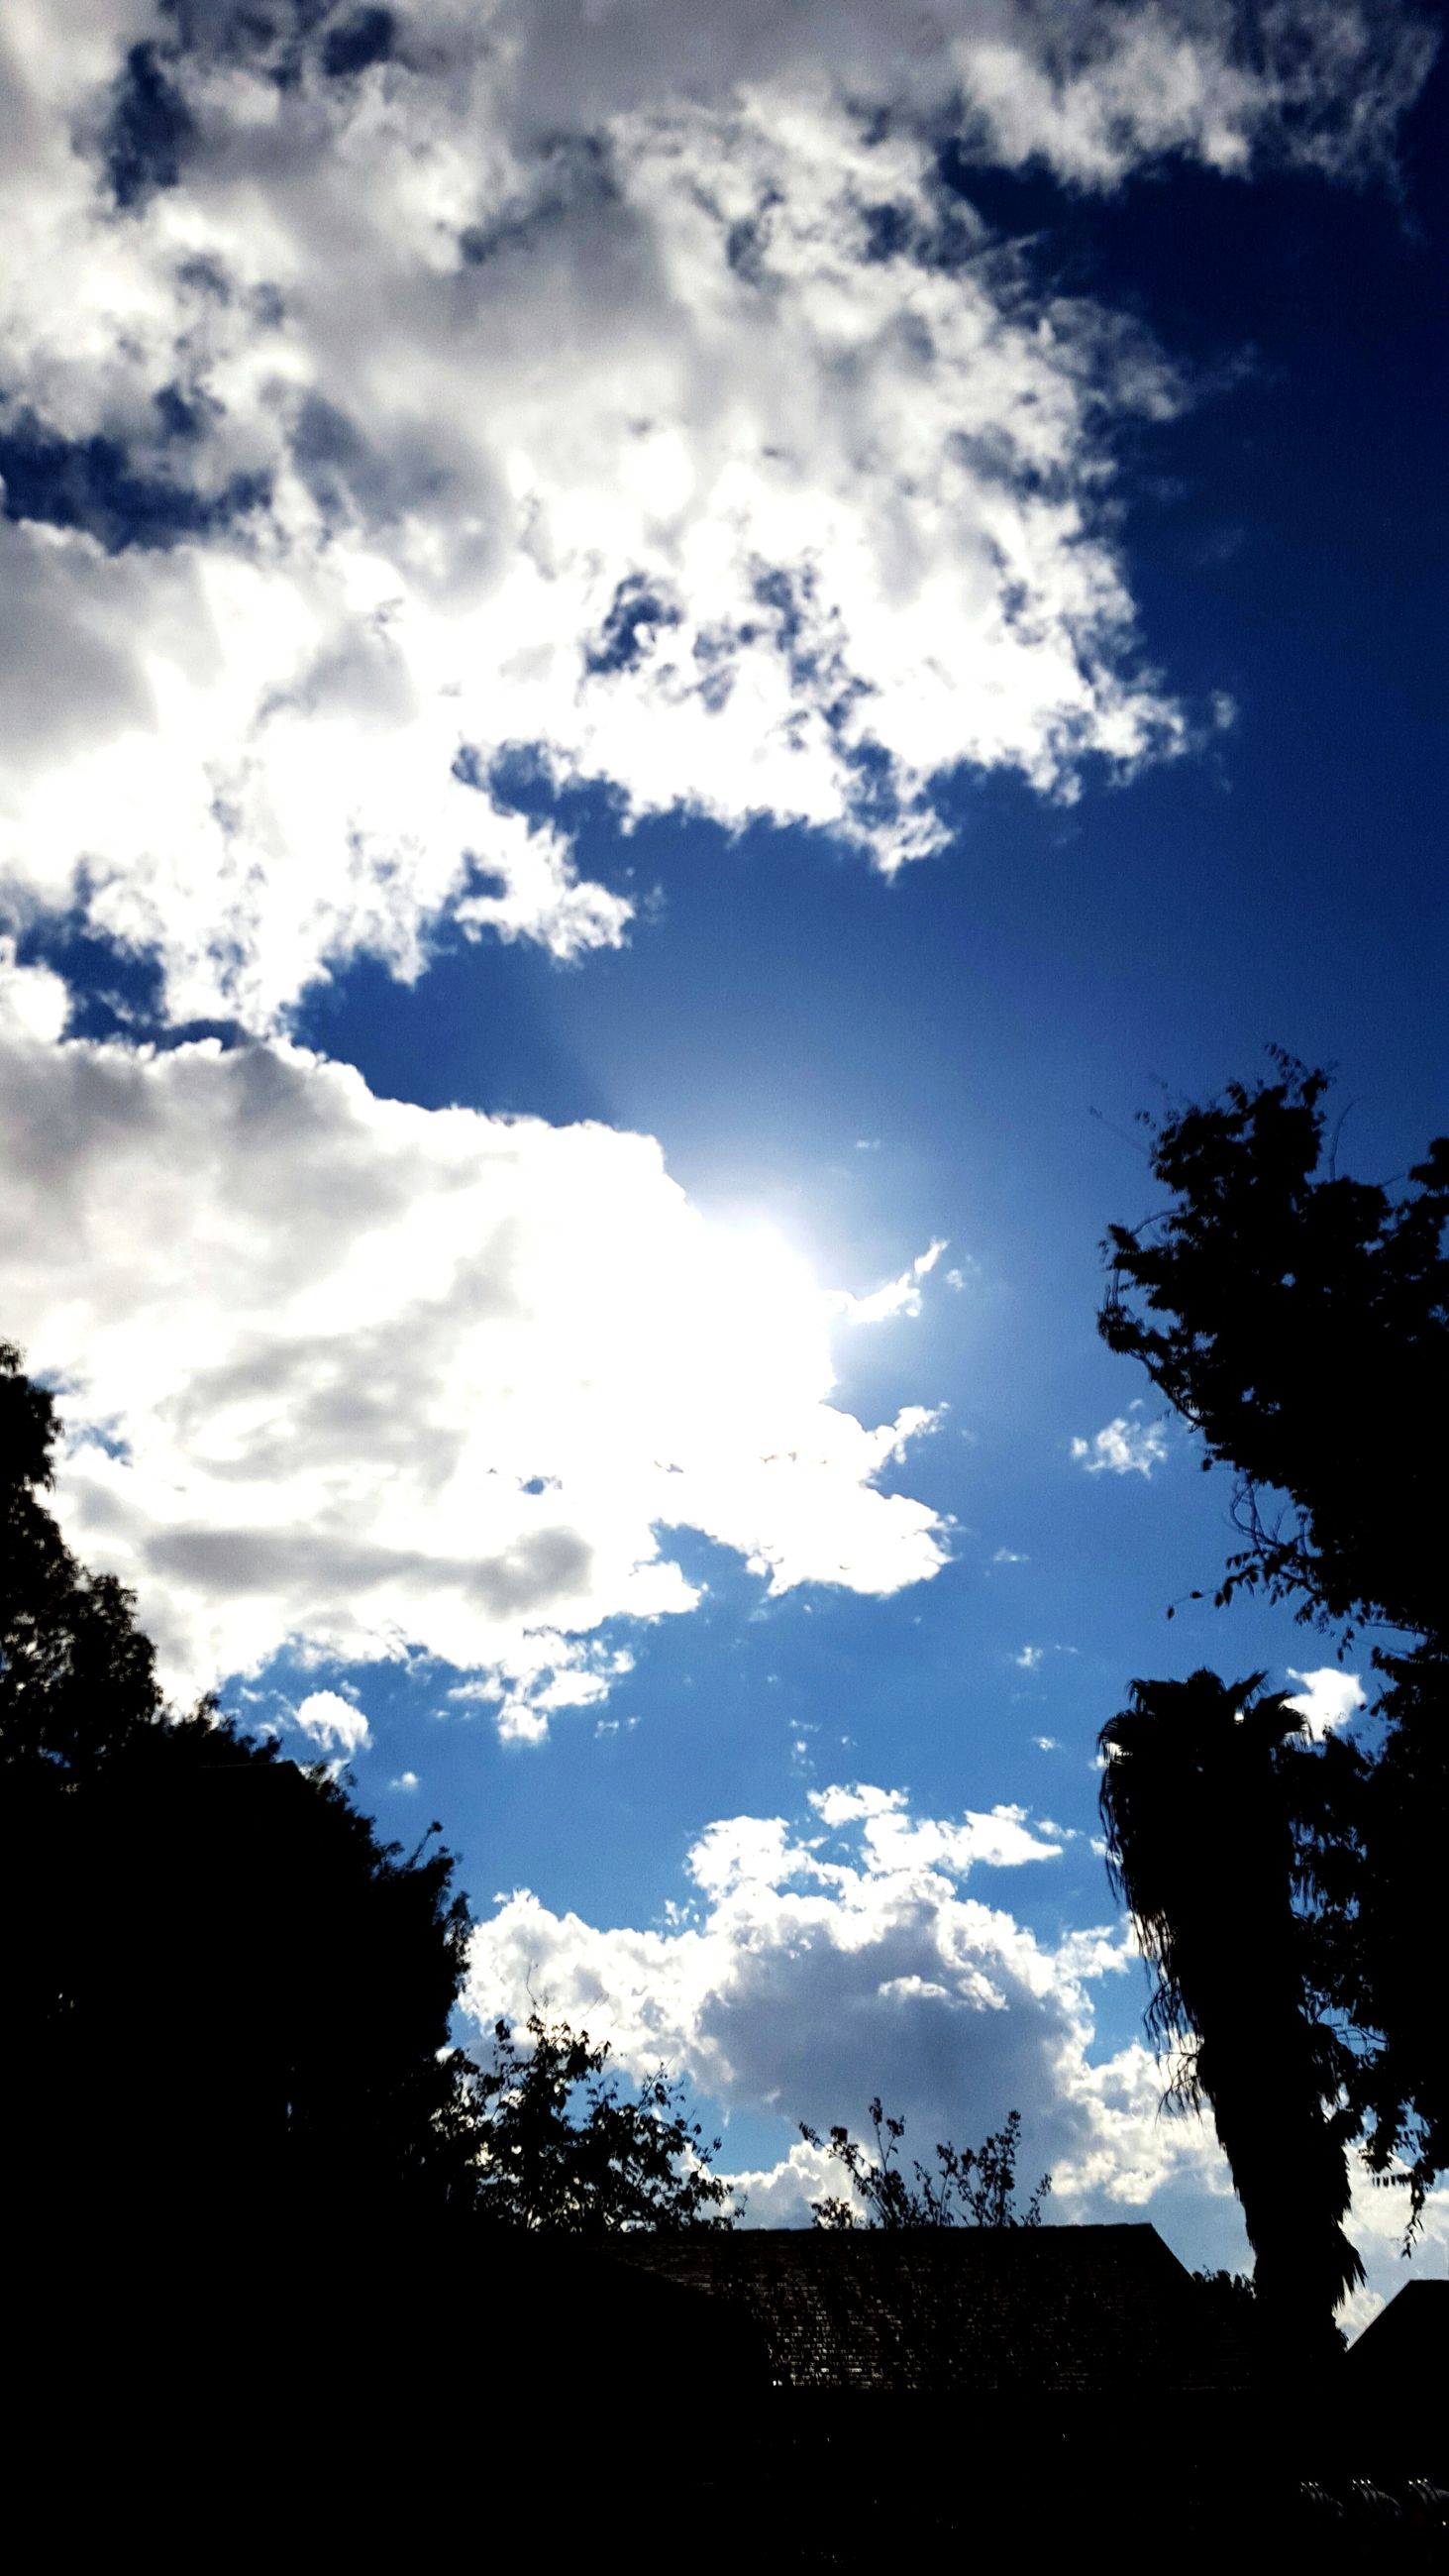 silhouette, sky, tree, low angle view, cloud - sky, tranquility, beauty in nature, scenics, nature, cloud, tranquil scene, blue, cloudy, high section, growth, outdoors, no people, idyllic, day, sunlight